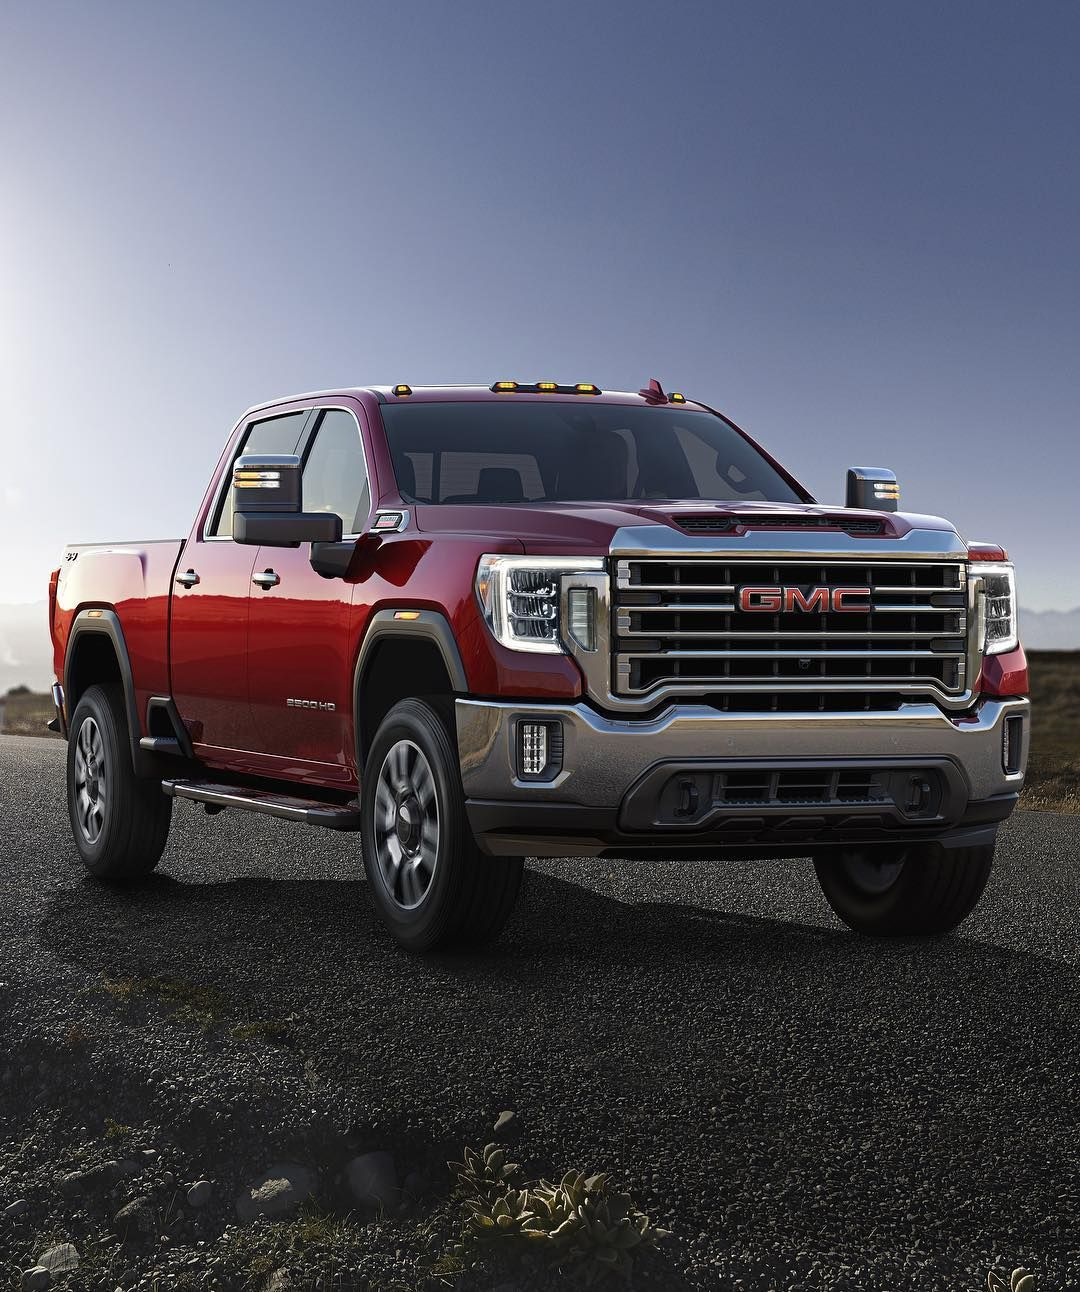 Motortrend On Instagram A Senior Executive At Gmc Said An